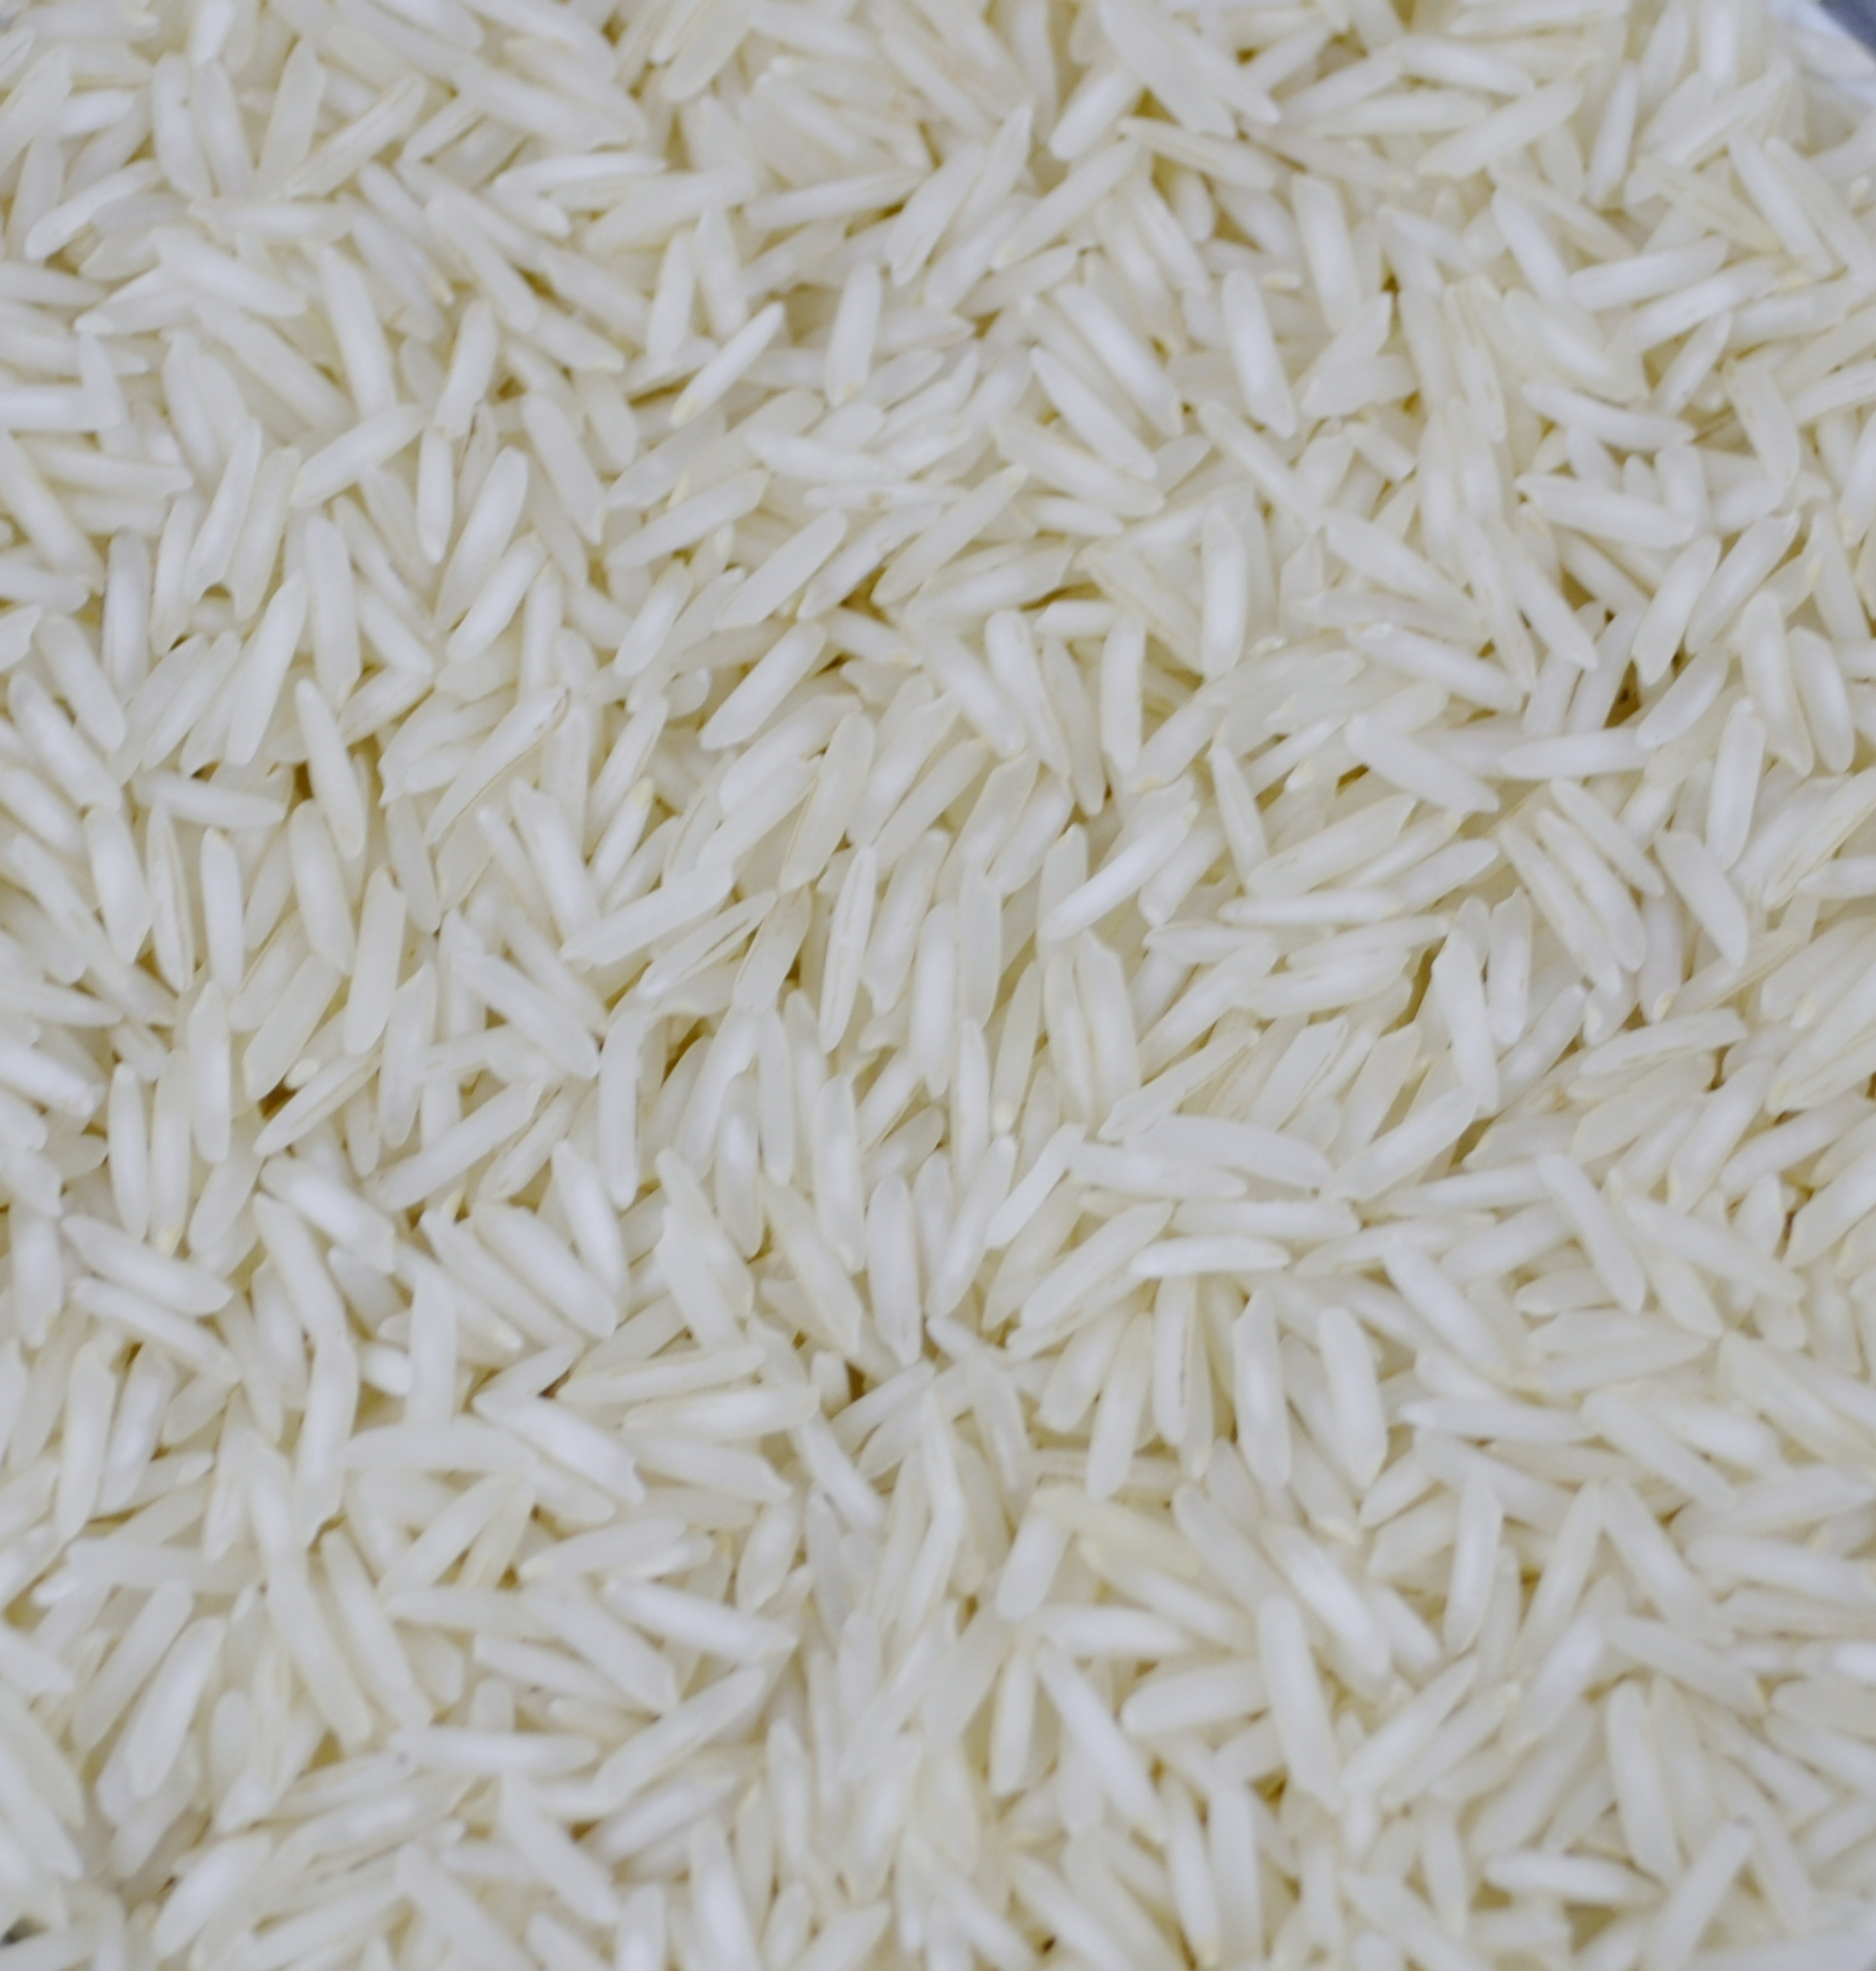 1121 steam basmati